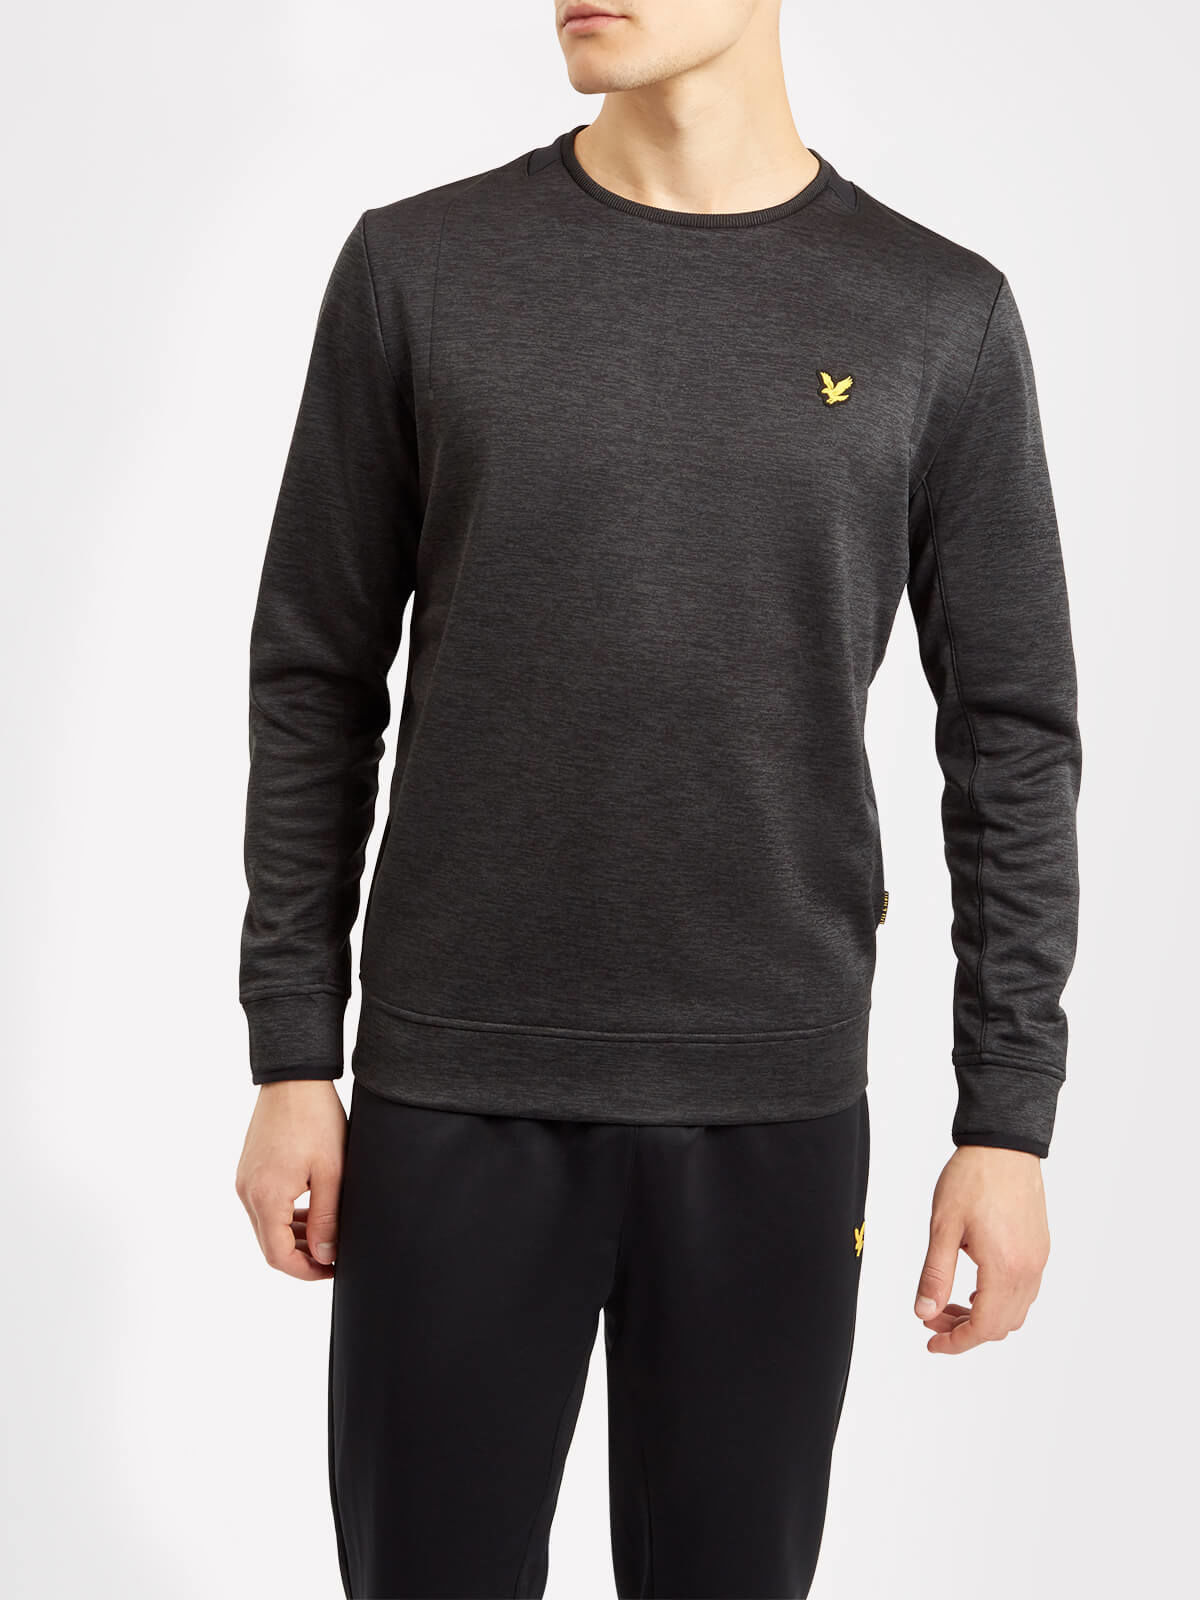 Lyle and Scott True Black Byrne Crew Neck Sports Jumper